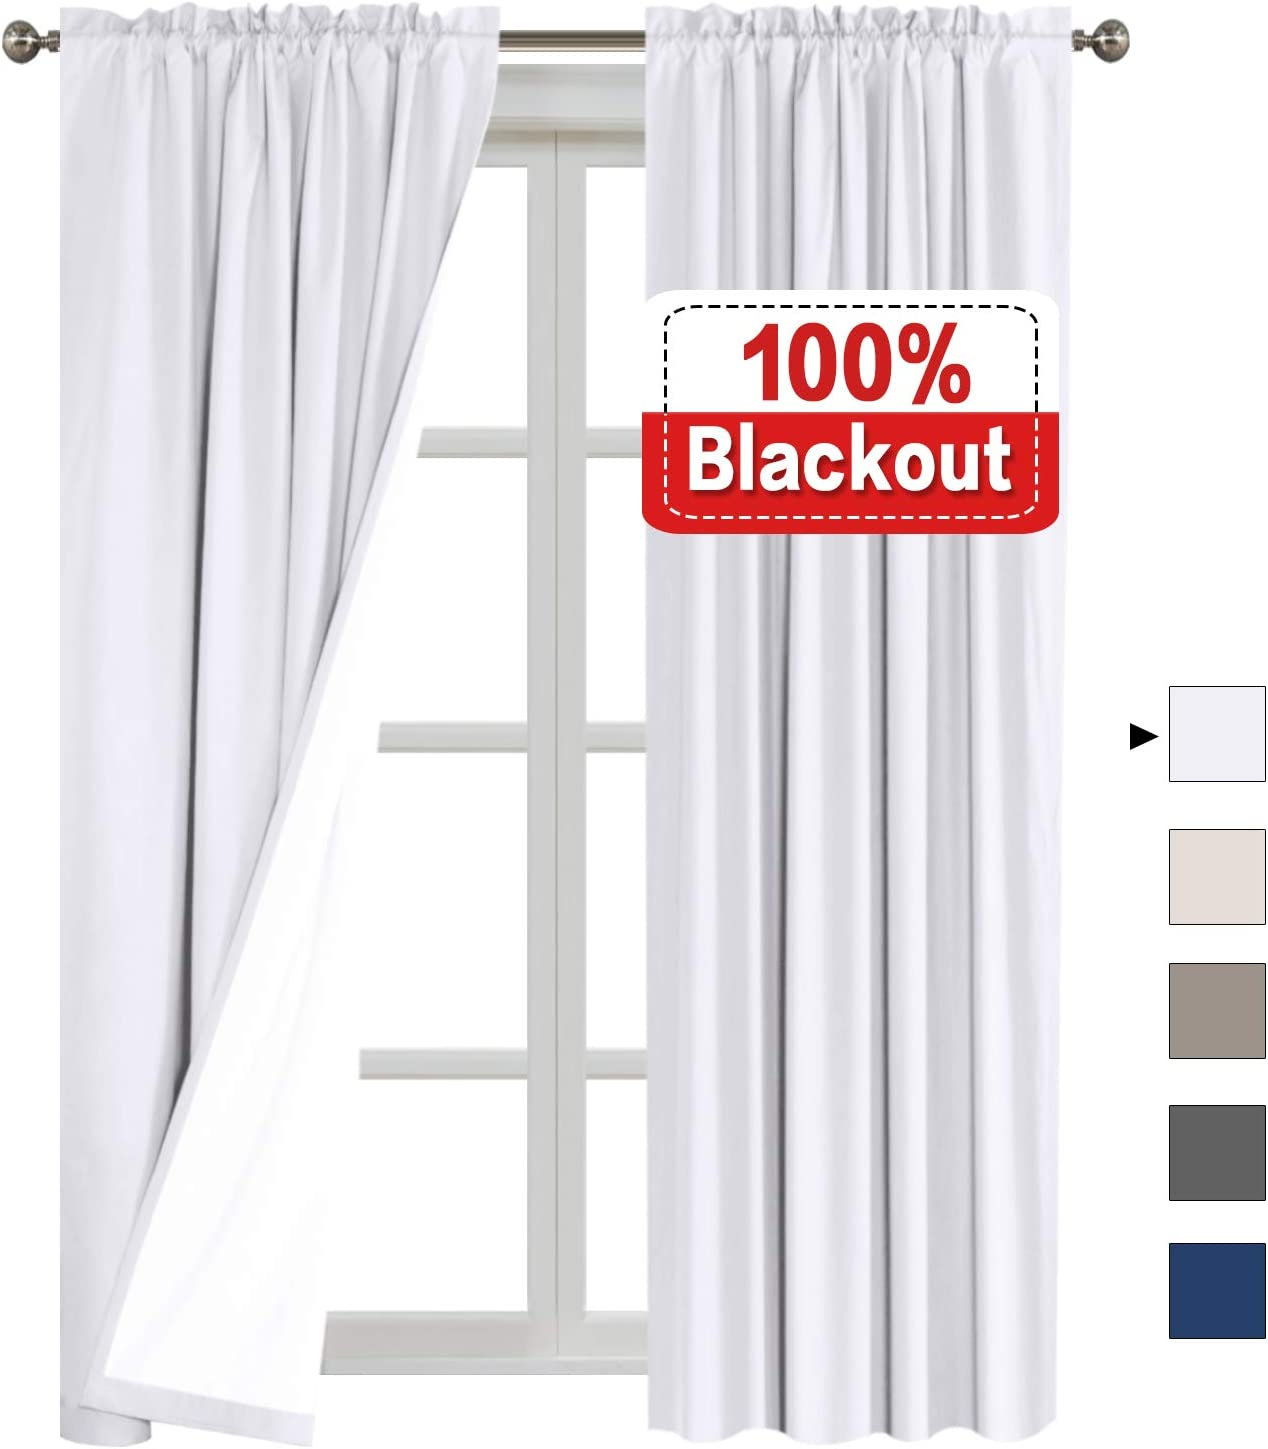 Navy Flamingo P 100/% Light Blocking Drapes Water Repellent Curtains with White Backing for Bedroom 63 inch Long Rod Pocket Window Treatment 2 Panels 2 Bonus Tie-Backs